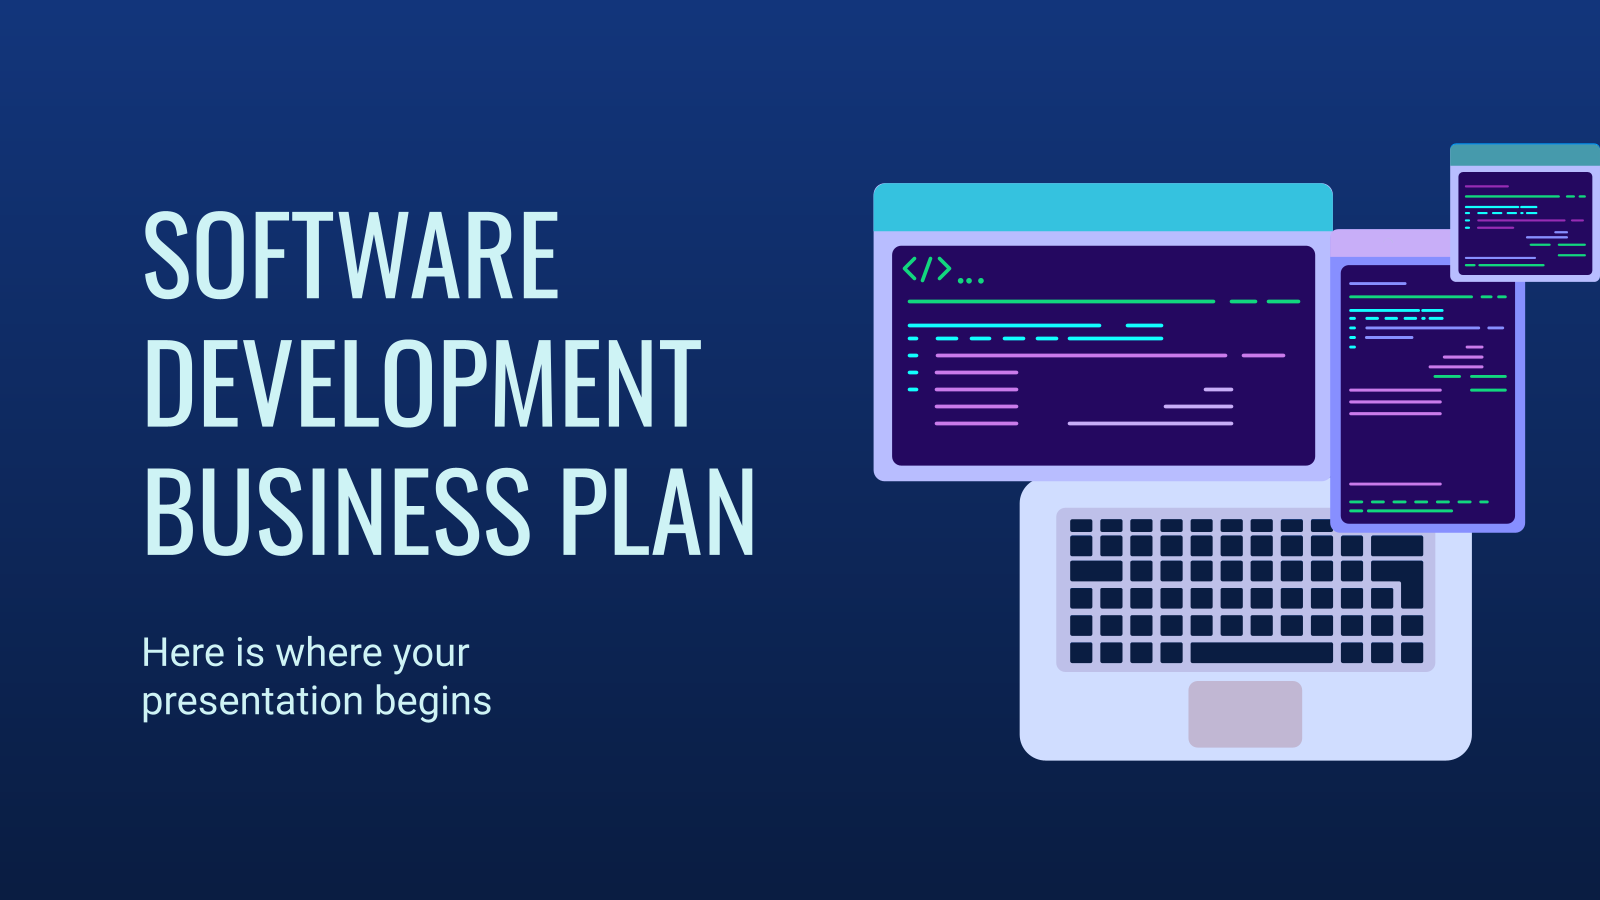 Software Development Business Plan presentation template